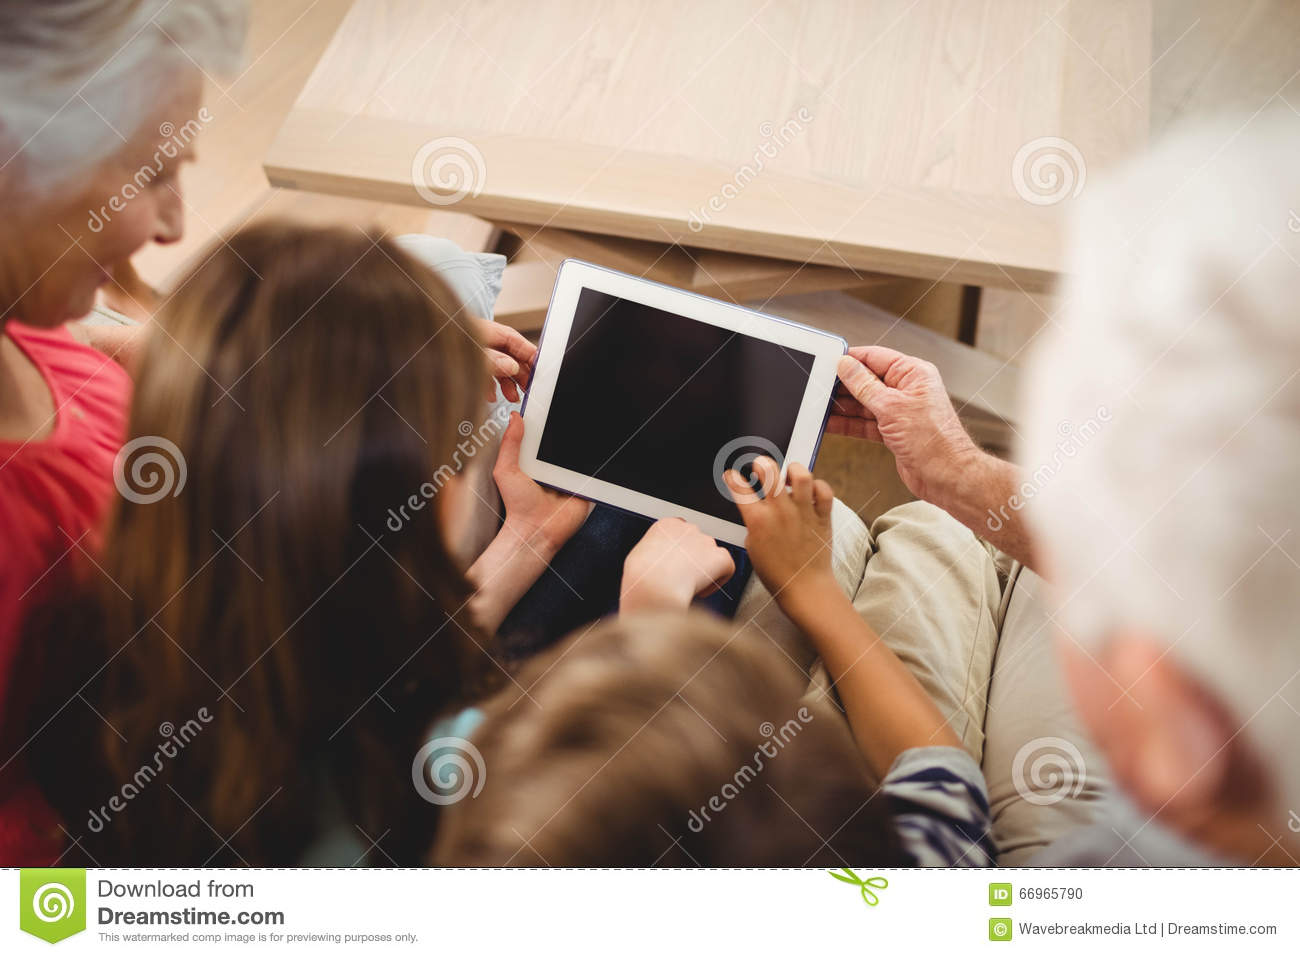 Children using tablet with their grandparents